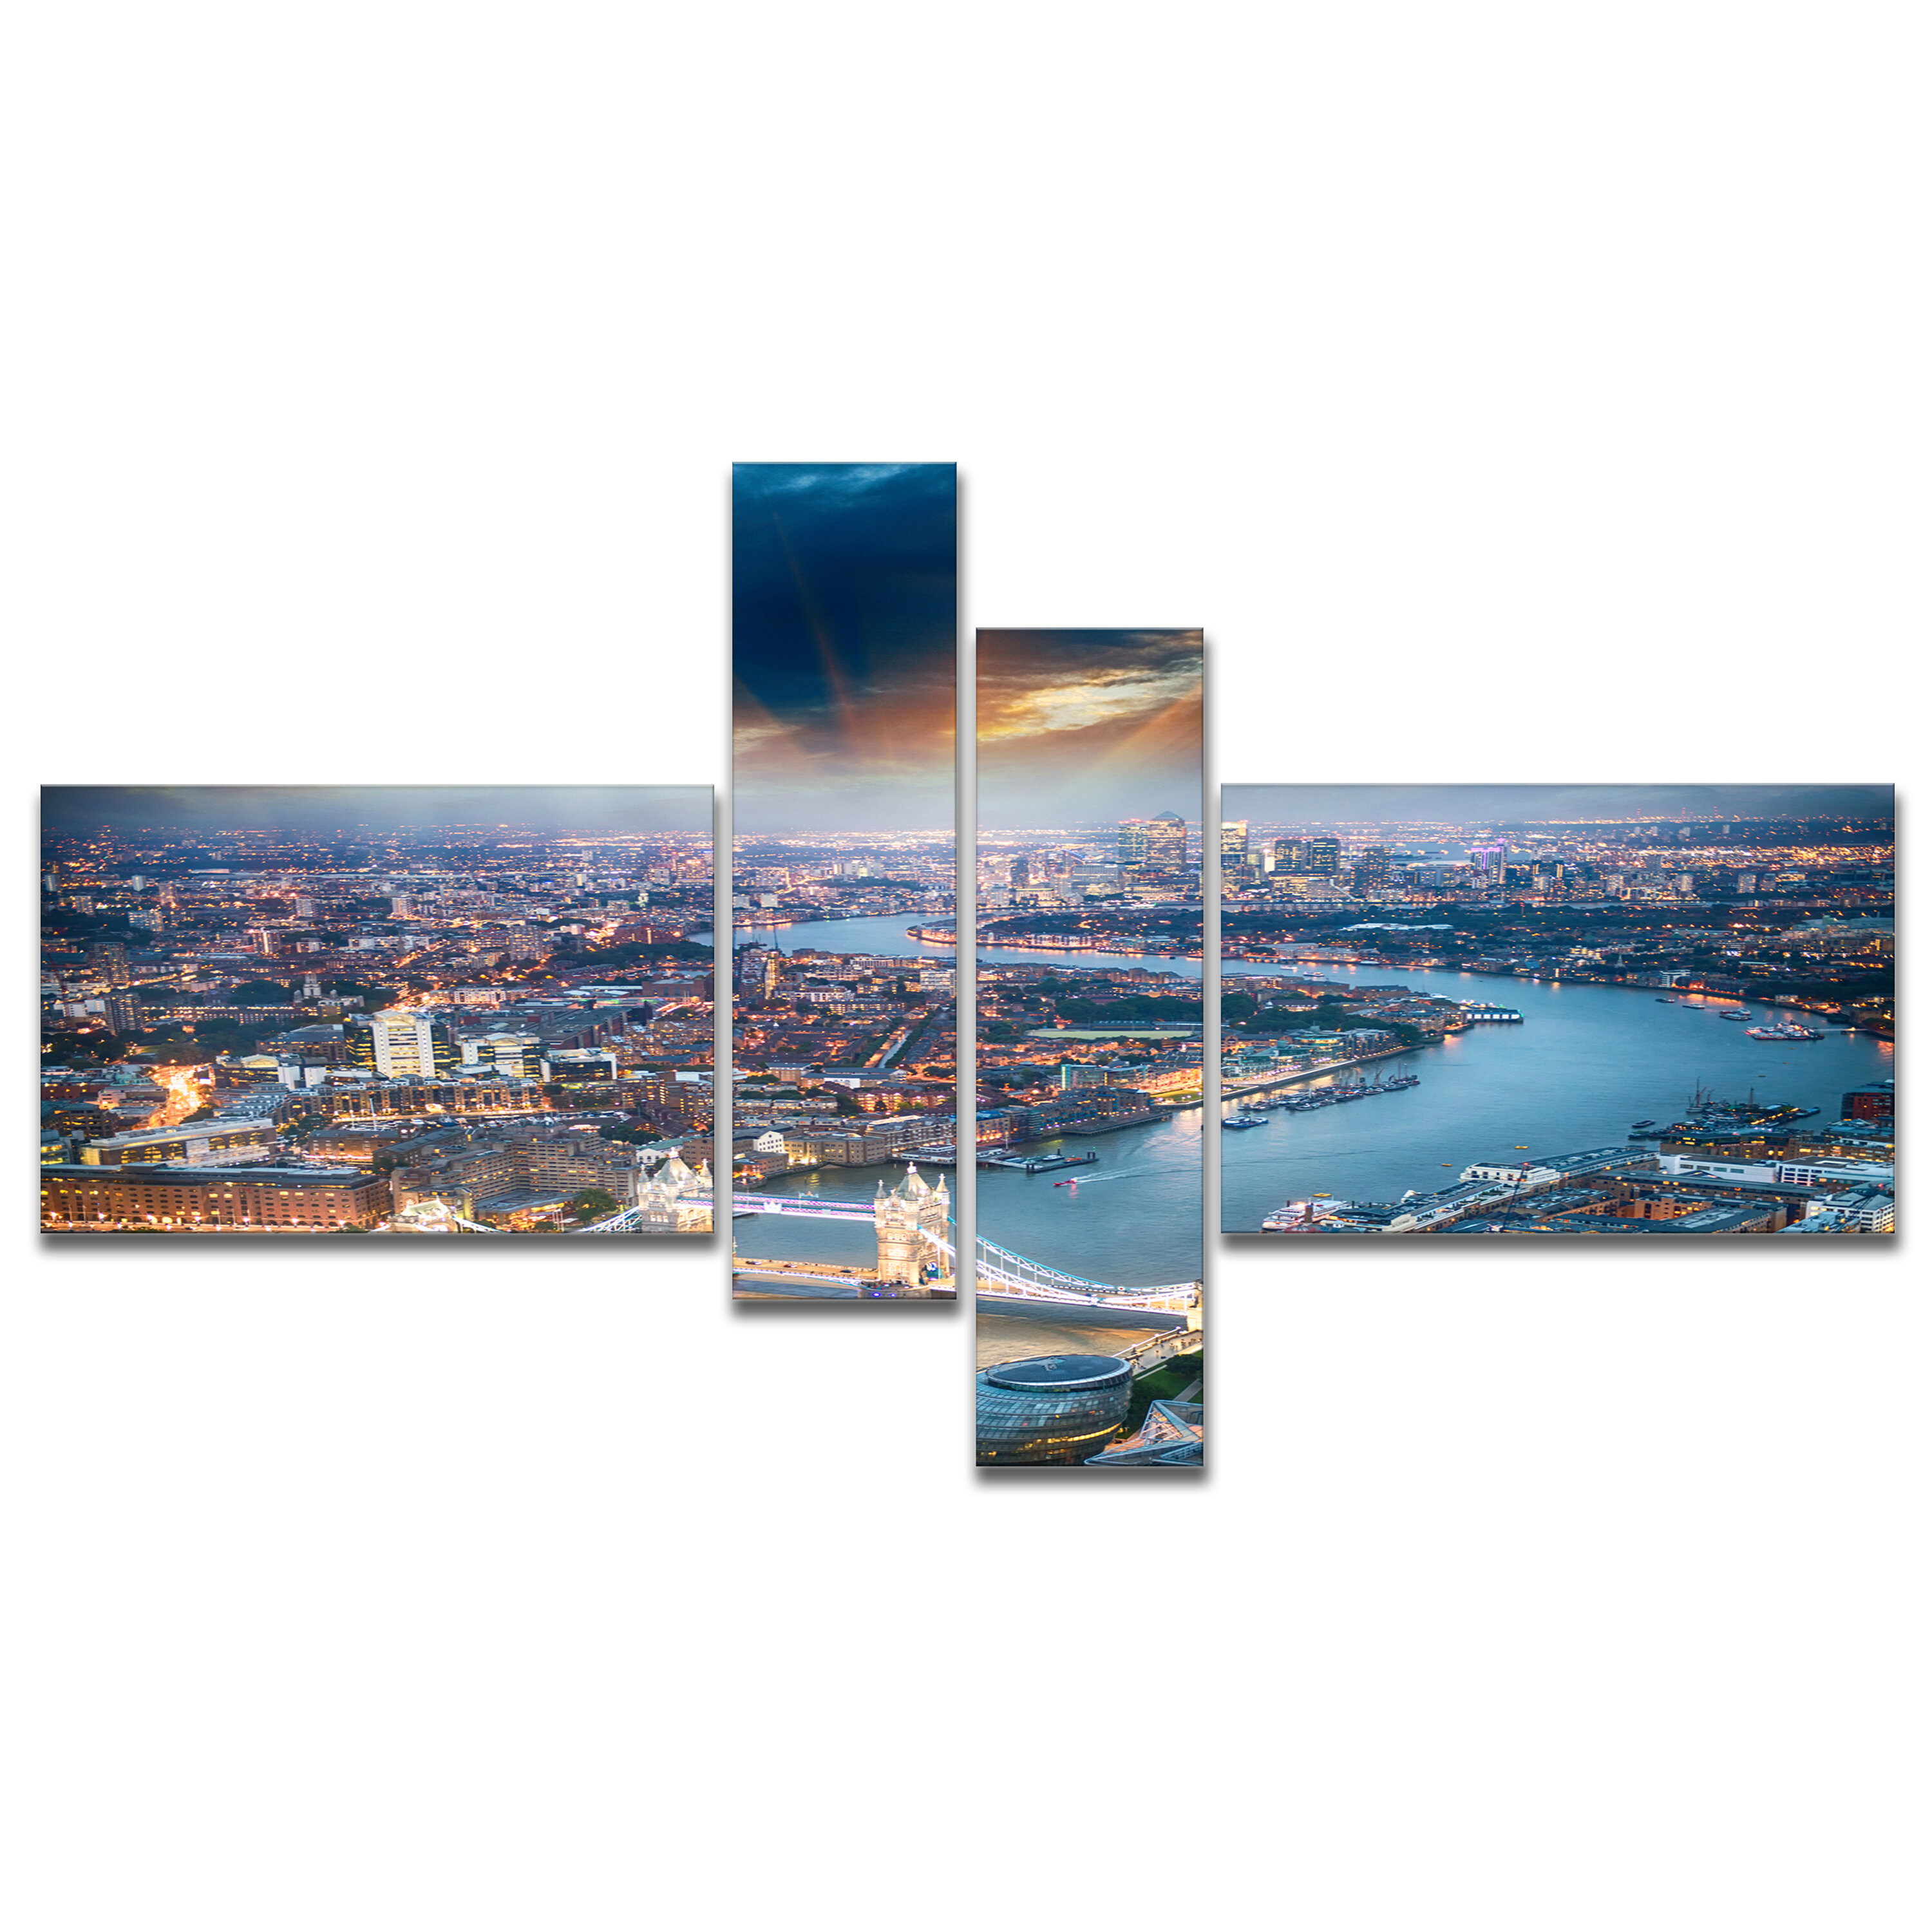 East Urban Home Aerial View Of London At Dusk Photographic Print Multi Piece Image On Canvas Wayfair